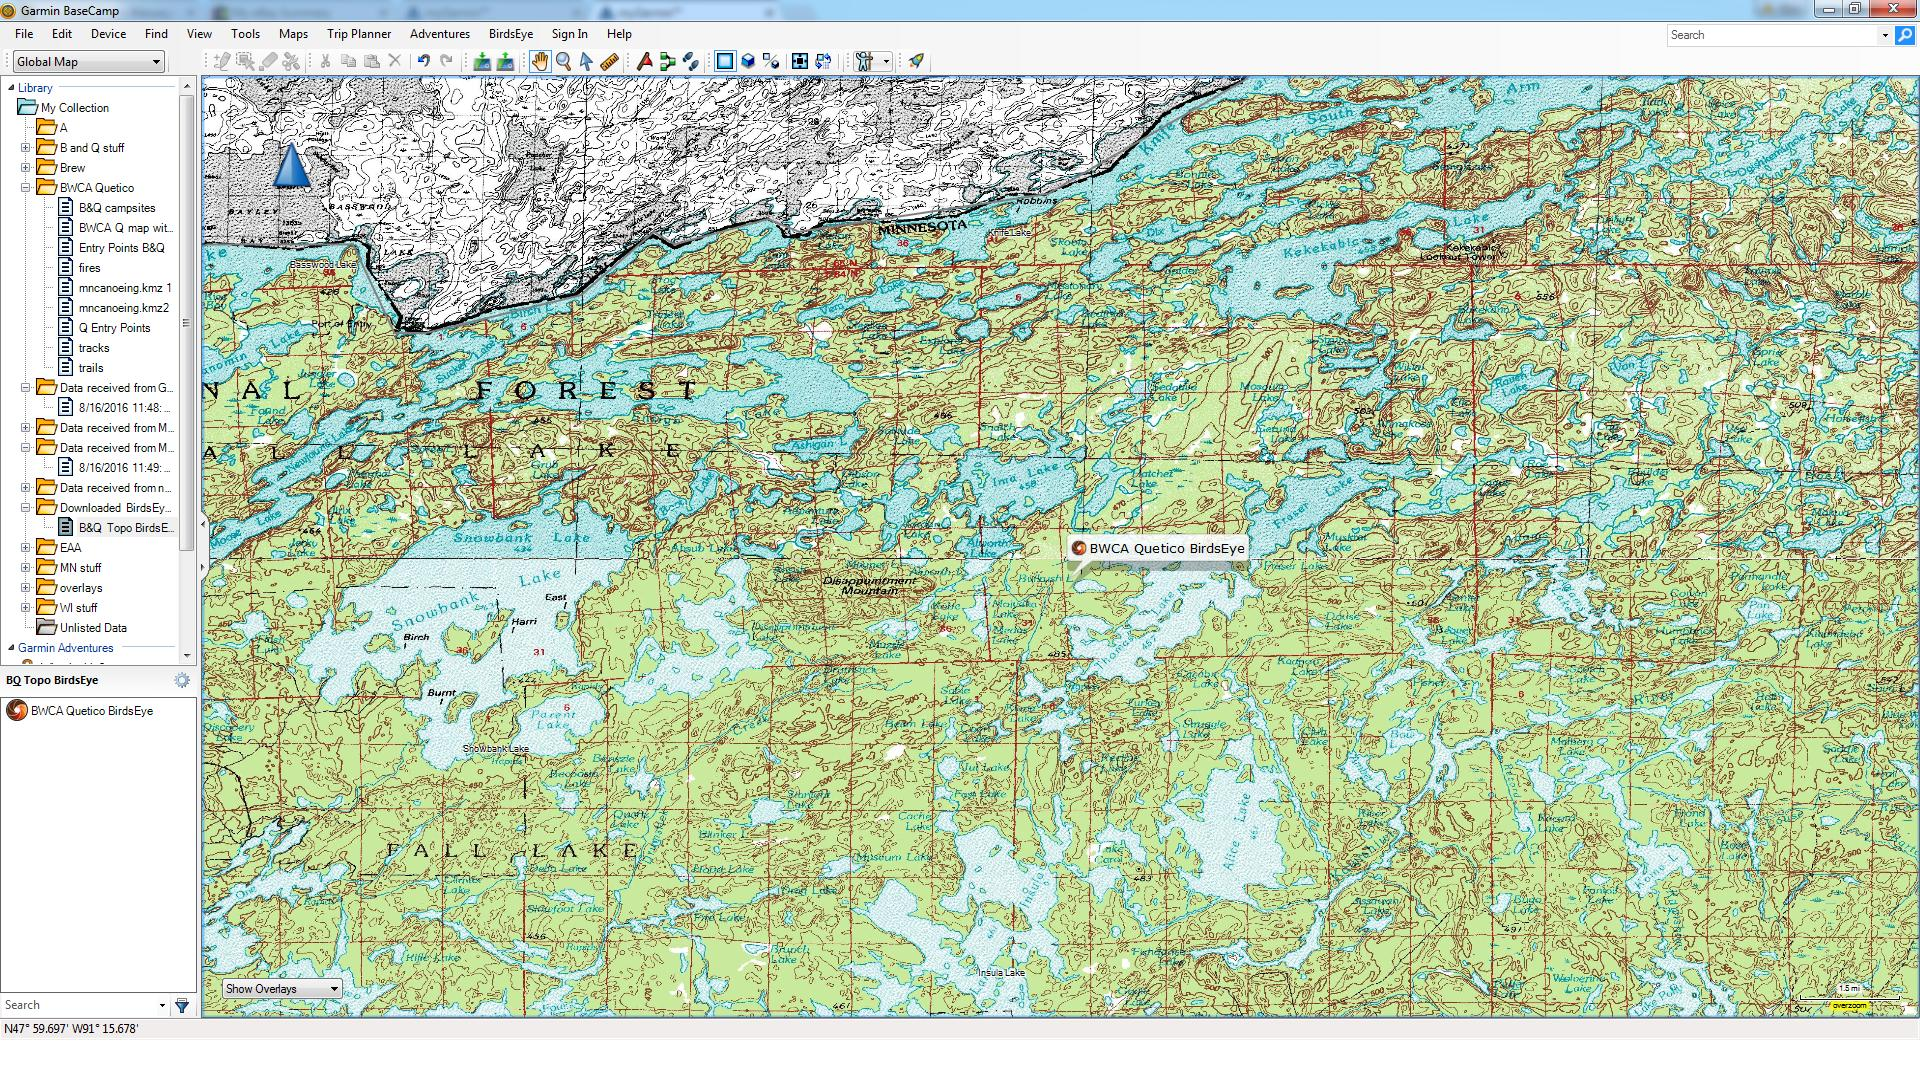 Bwca Birdseye Topo Maps Boundary Waters Private Group Forum Gps